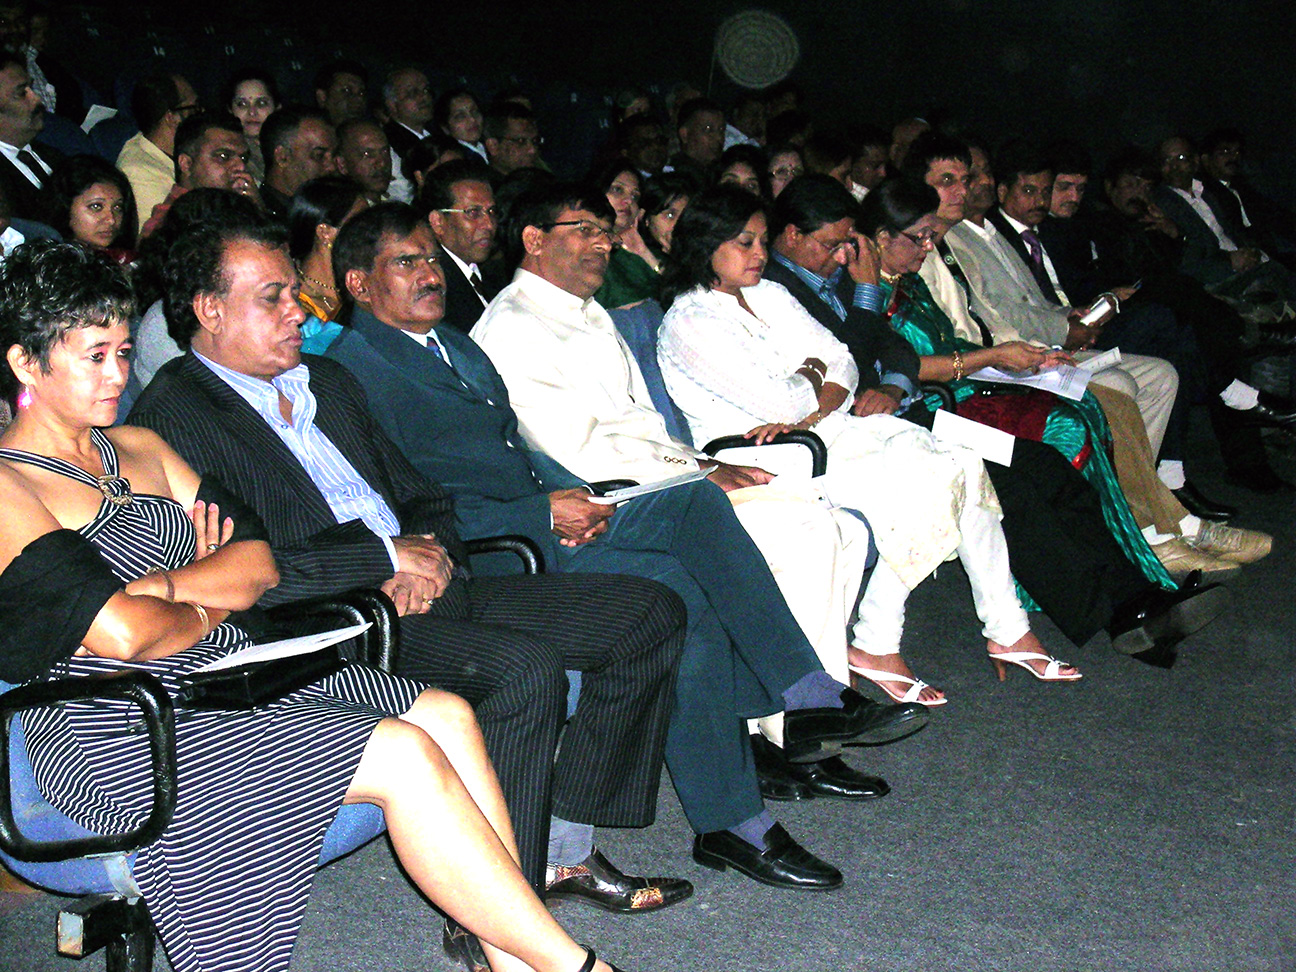 Audience at the function